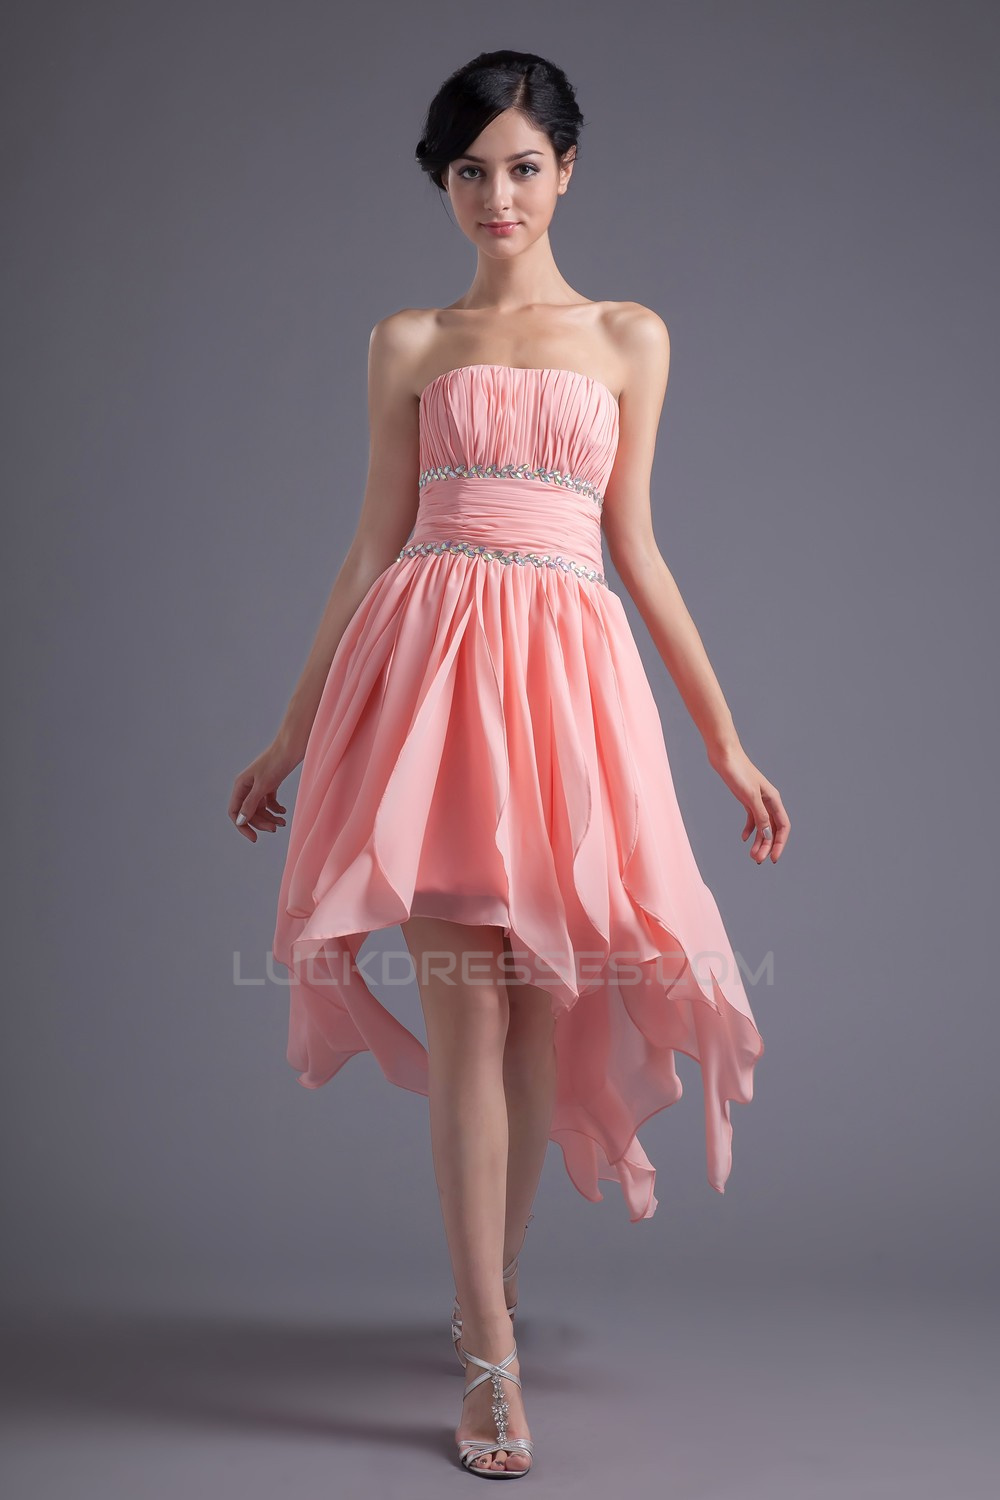 High Low Strapless Short Beaded Prom Evening Bridesmaid